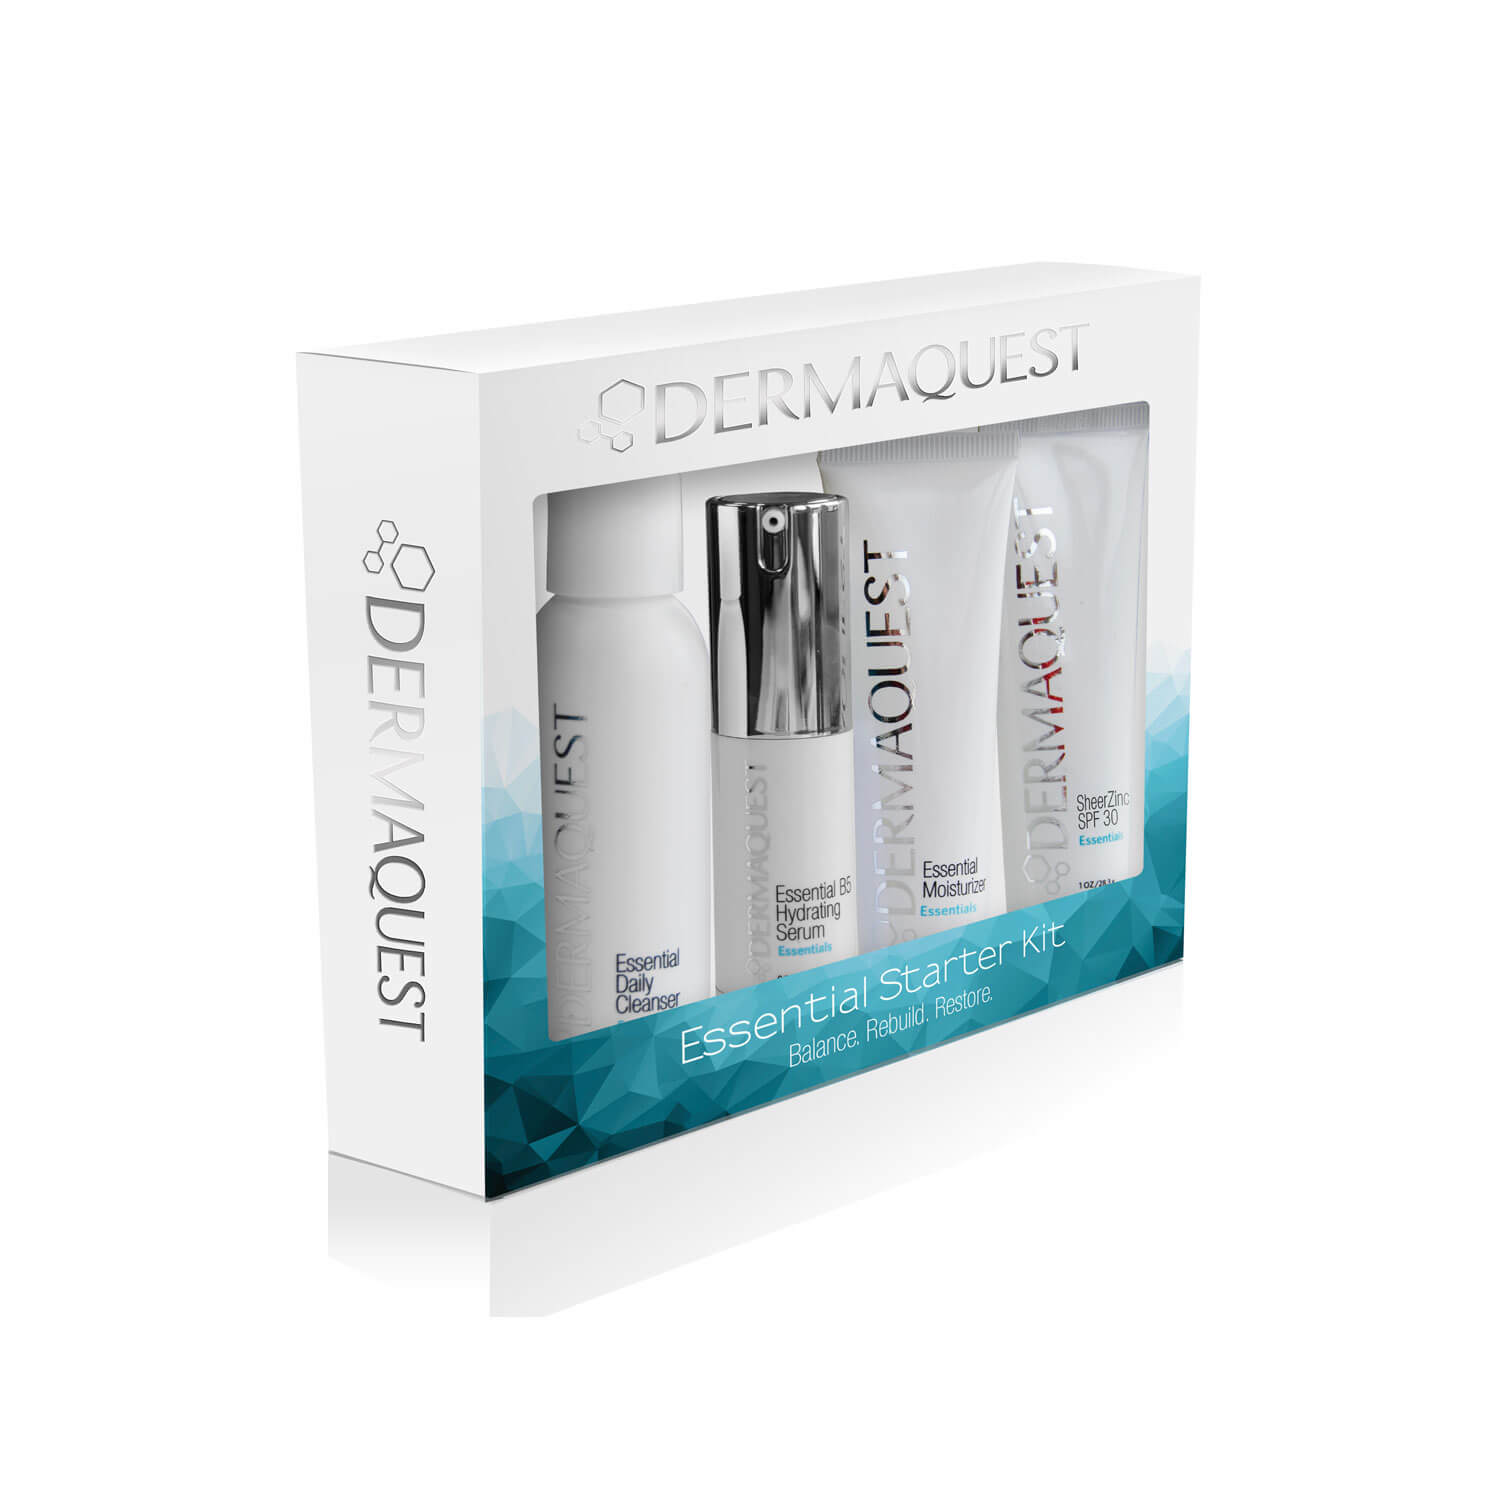 Essential Starter Kit - This kit contains comprehensive blends of high-performance ingredients such as powerful antioxidants and botanical plant stem cells designed to balance, hydrate, strengthen and protect the skin. this regimen helps your skin reach its fullest potential by improving skins' natural balance and establishing a vibrant healthy glow.sizesEssential Daily Cleanser (2 fl oz / 59.1 ml)Essential B5 Hydrating Serum (0.5 fl oz / 14.8 ml)Essential Moisturizer (1 fl oz / 29.6 ml)SheerZinc SPF30(1 oz / 28.3 g)